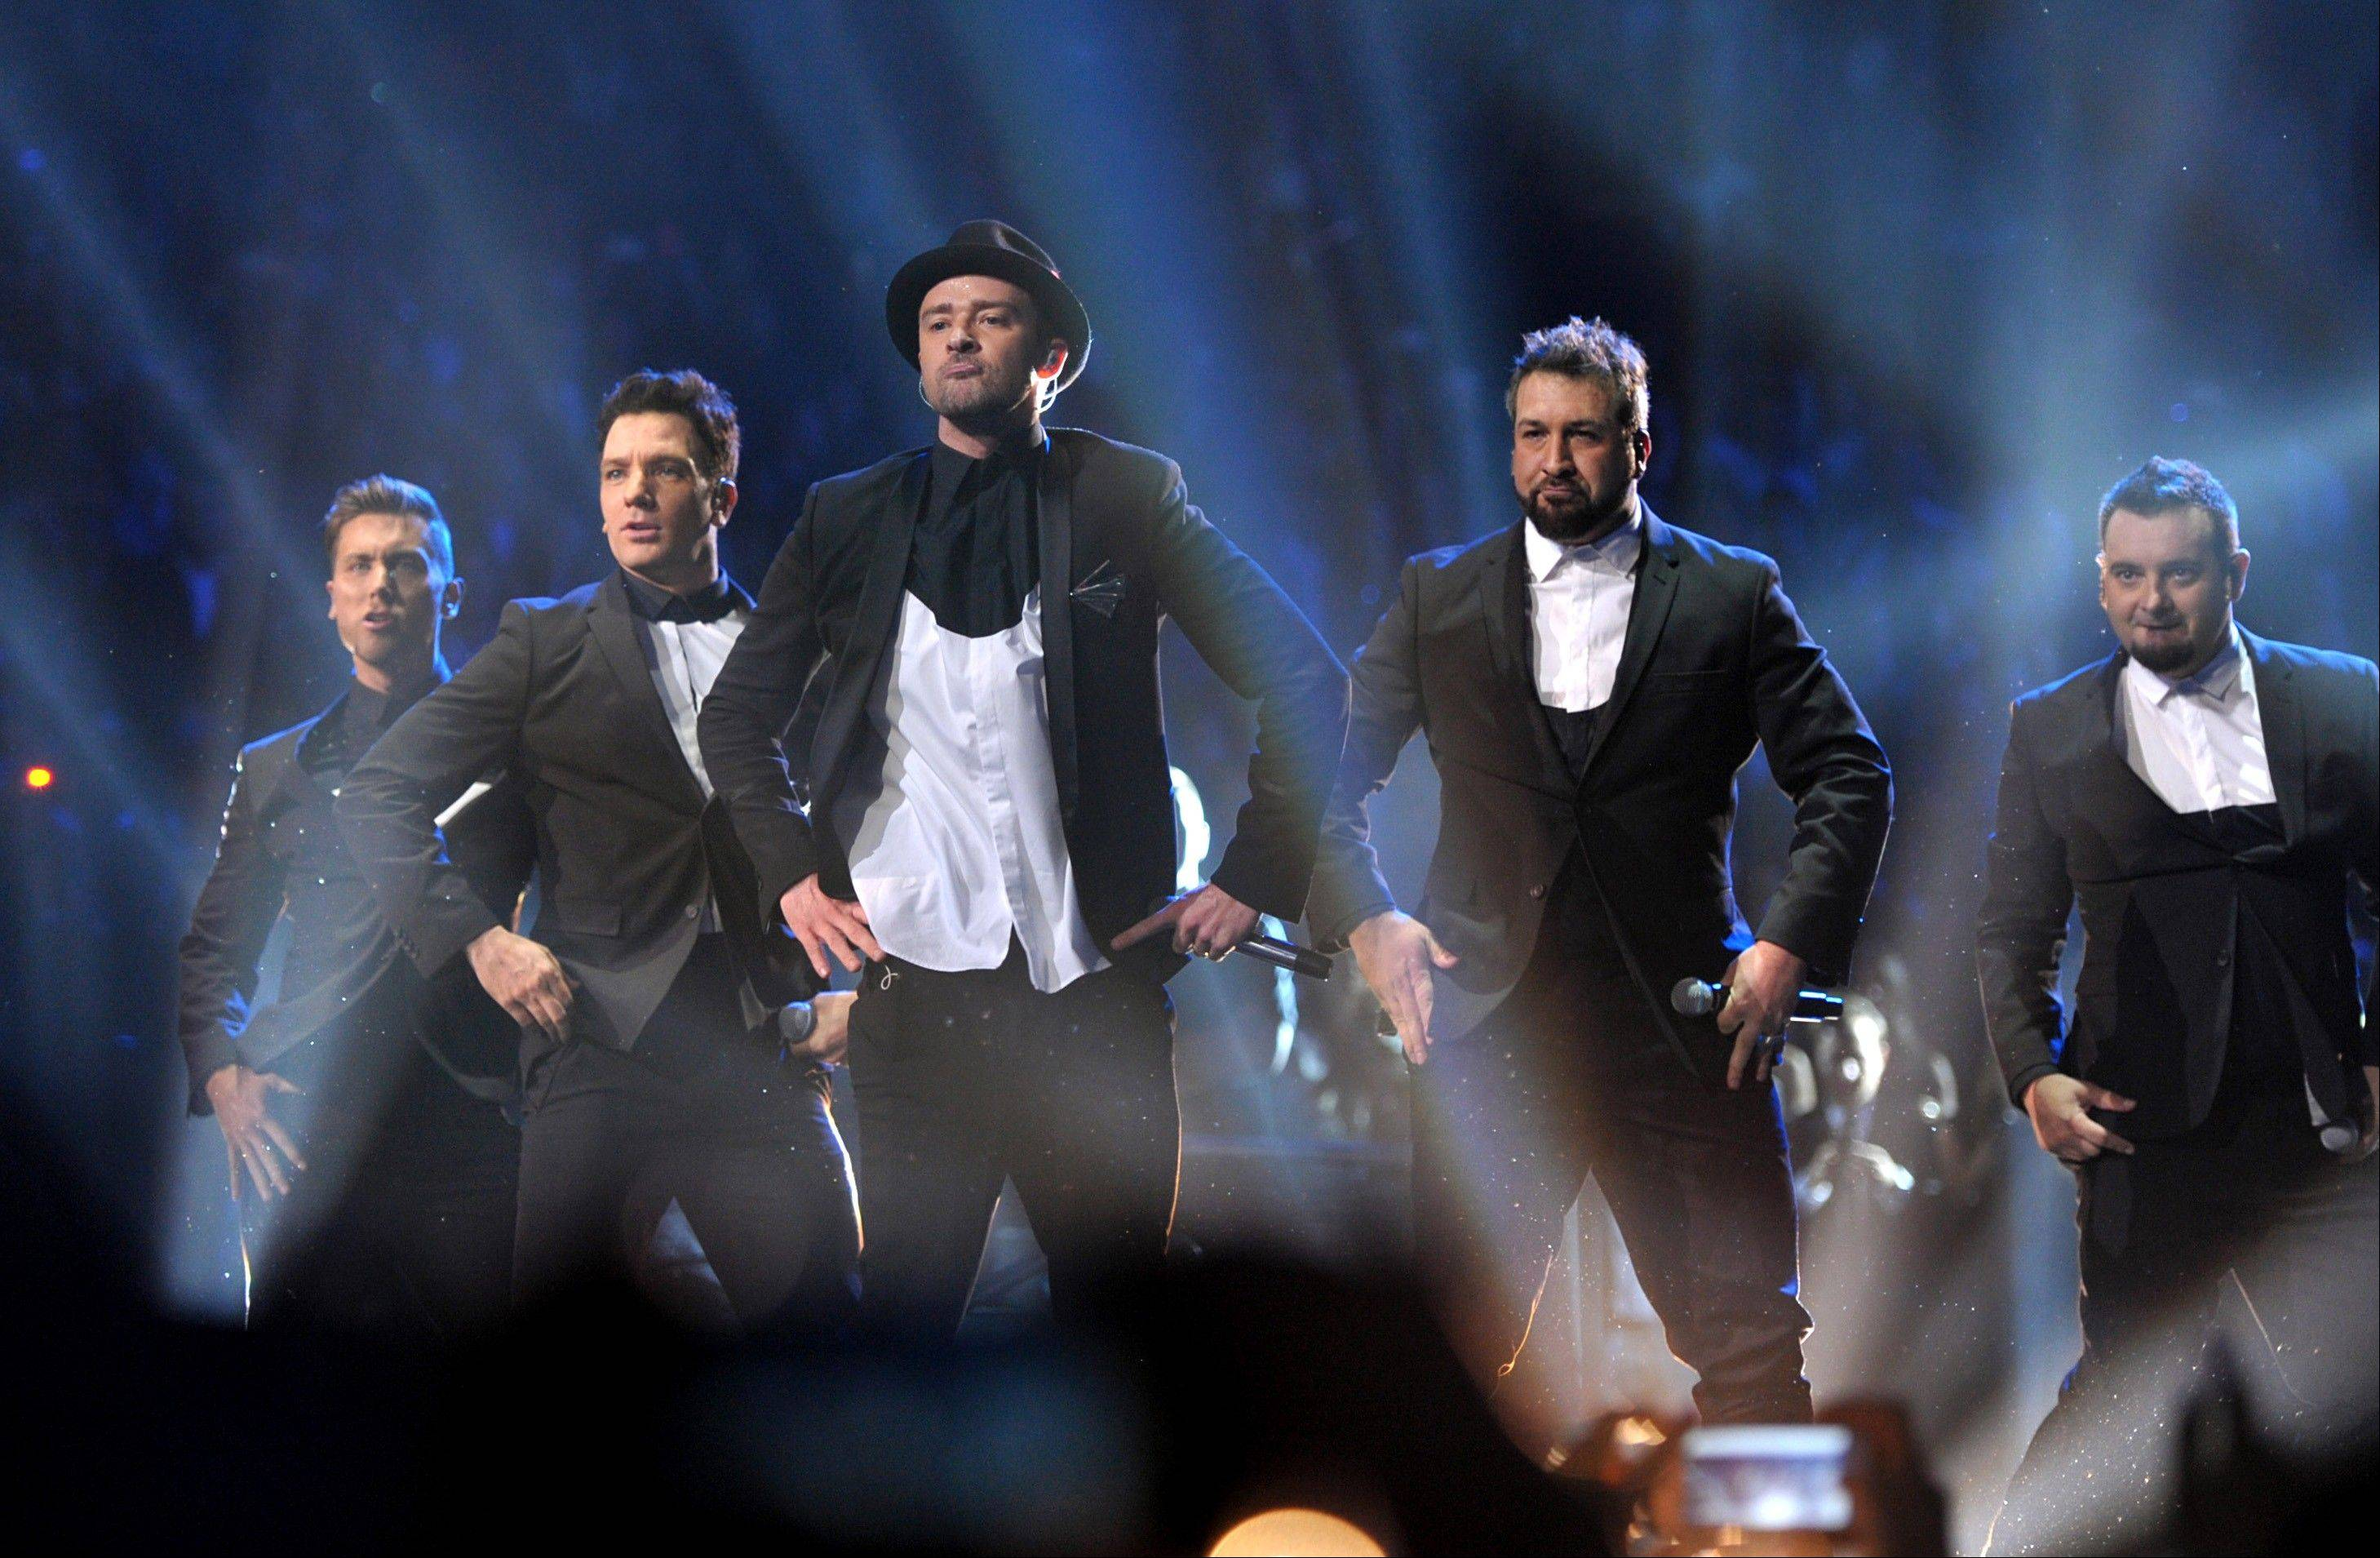 From left, Lance Bass, JC Chasez, Justin Timberlake, Joey Fatone and Chris Kirkpatrick, of musical group 'N Sync, perform at the MTV Video Music Awards at Barclays Center on Sunday, Aug. 25, 2013, in the Brooklyn borough of New York.